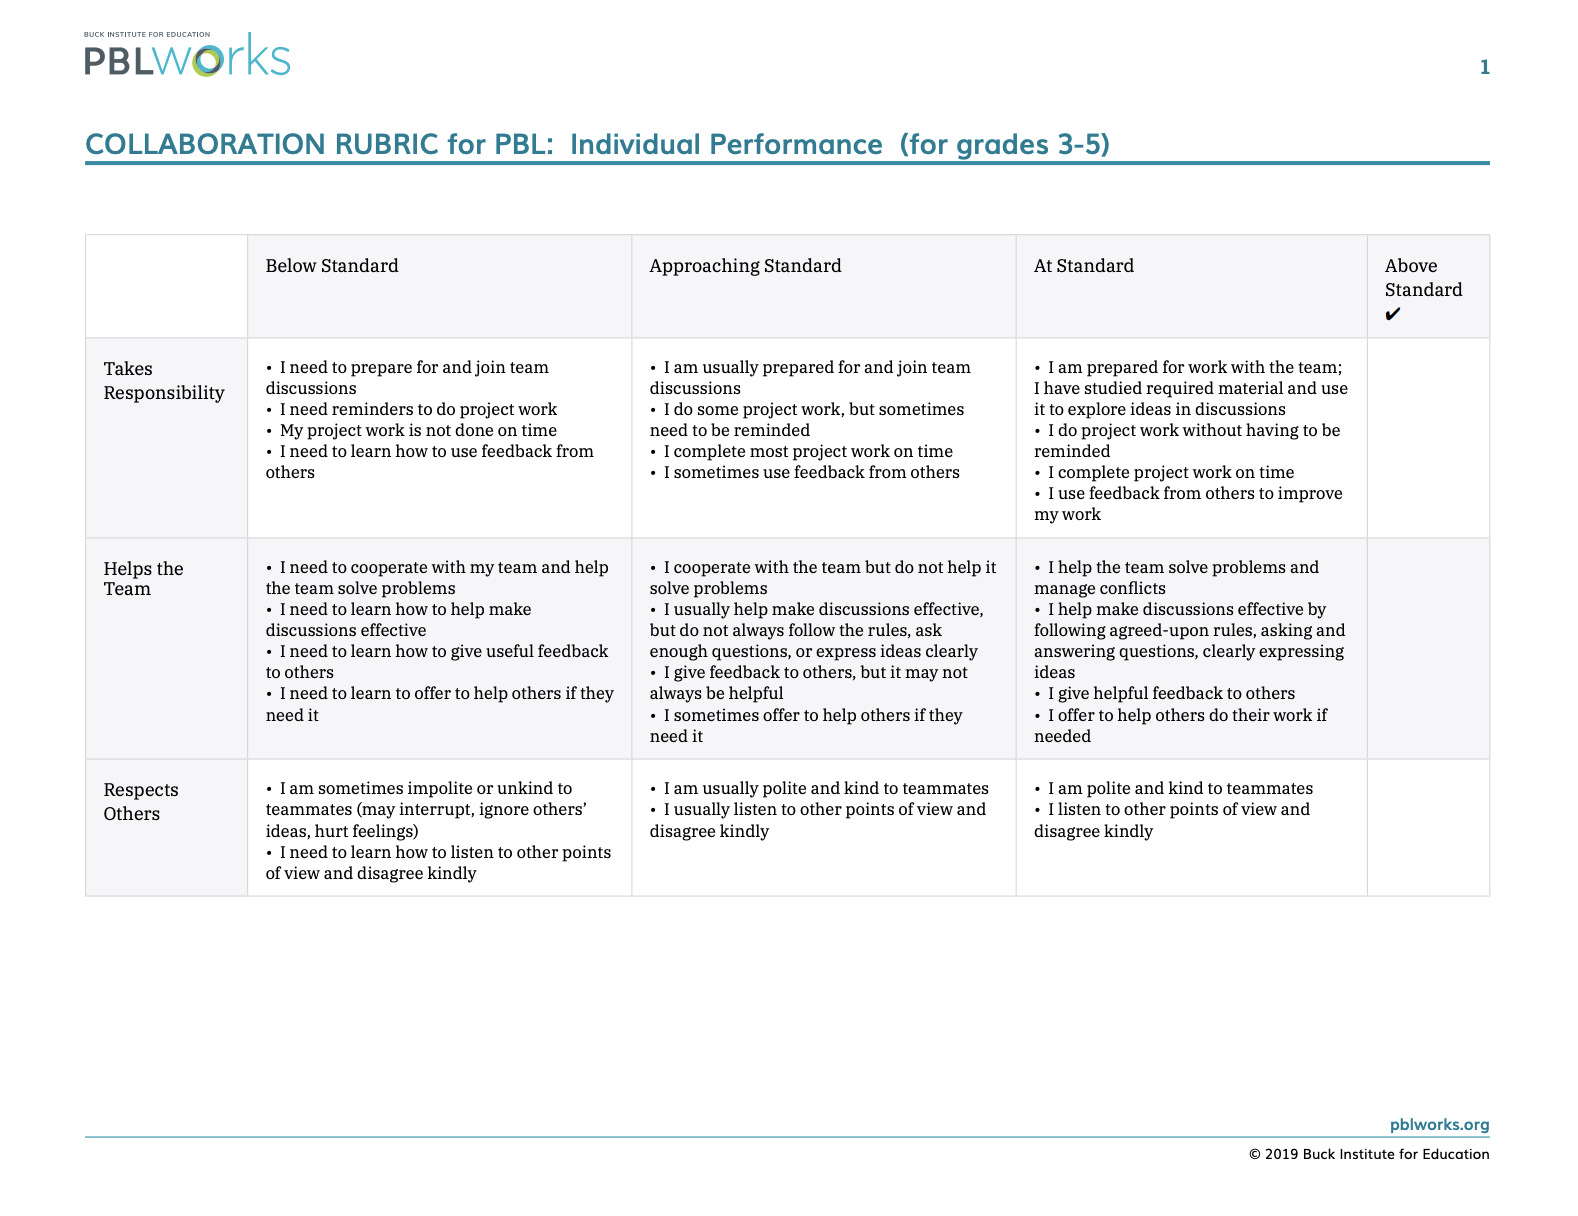 Collaboration Rubric for PBL grades 3-5 NON-CCSS